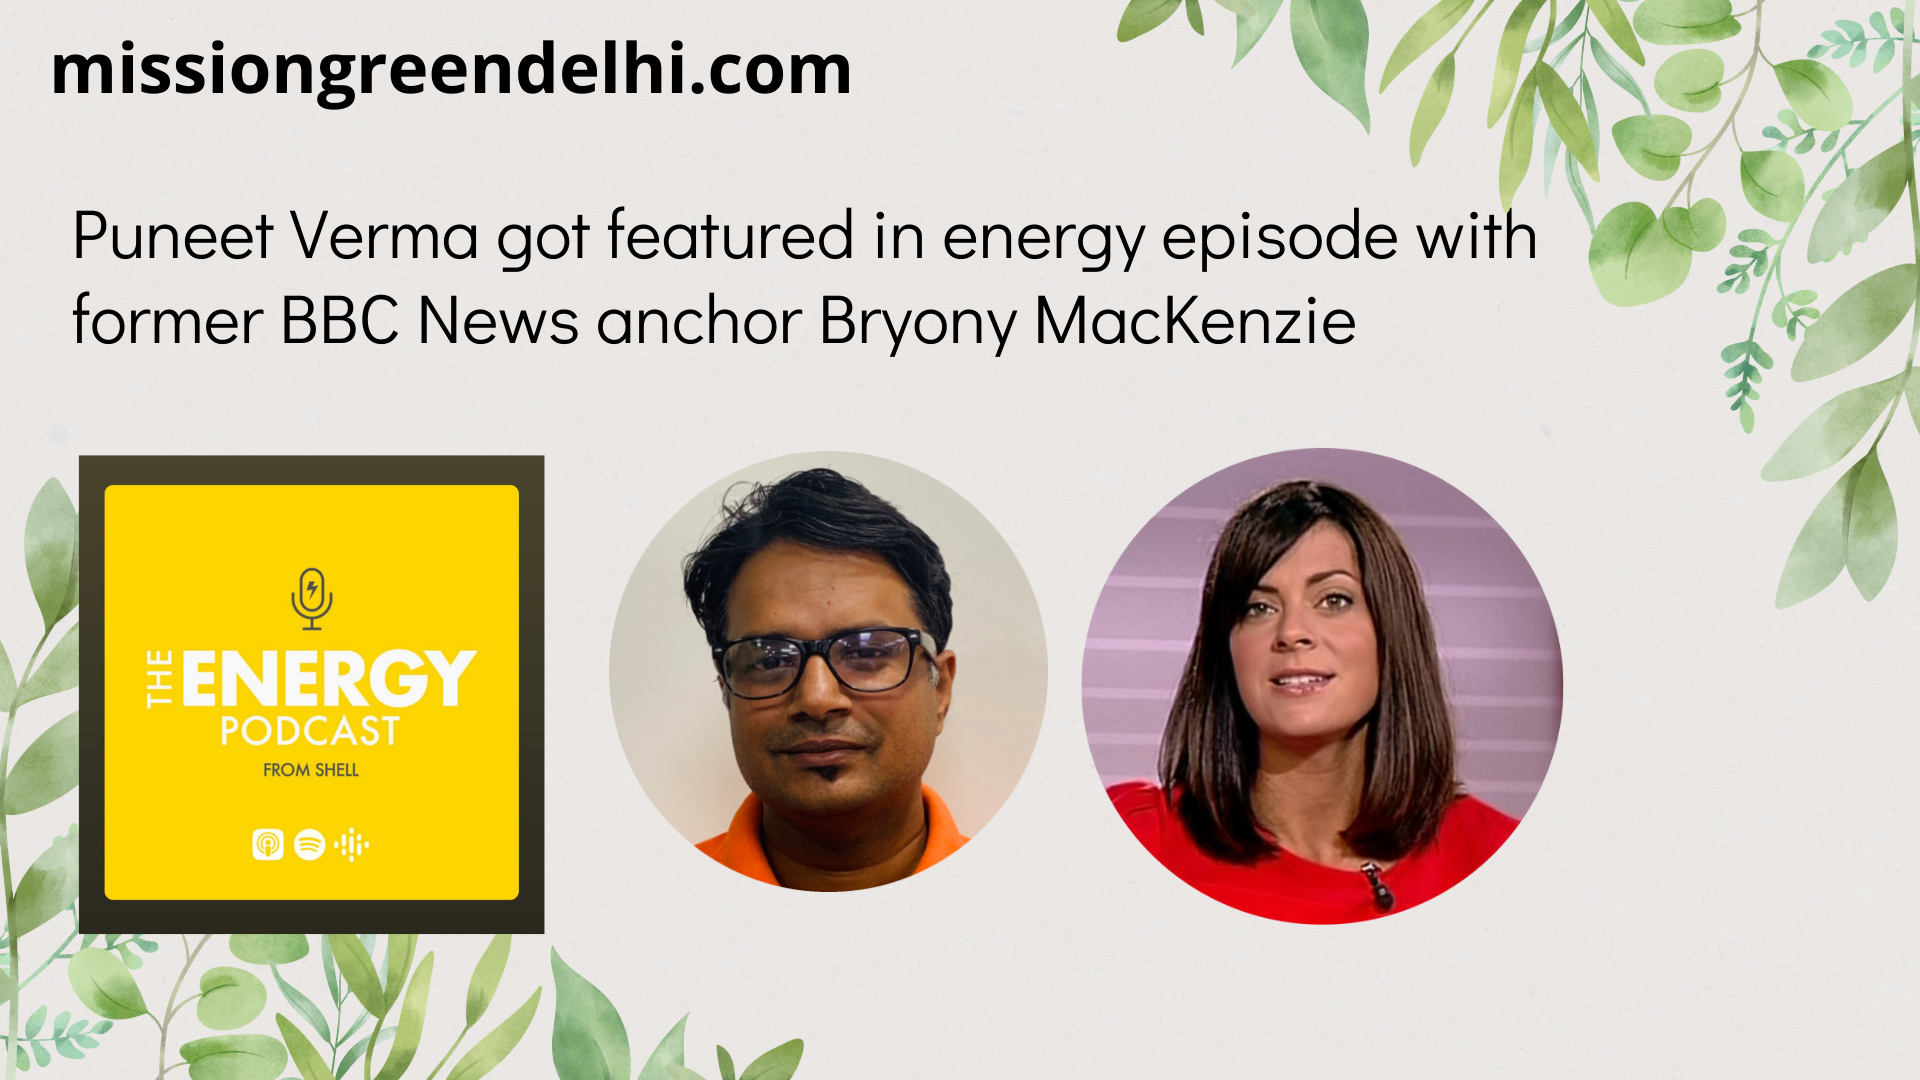 MGD Platform got Featured in Energy Podcast with Bryony MacKenzie from Shell